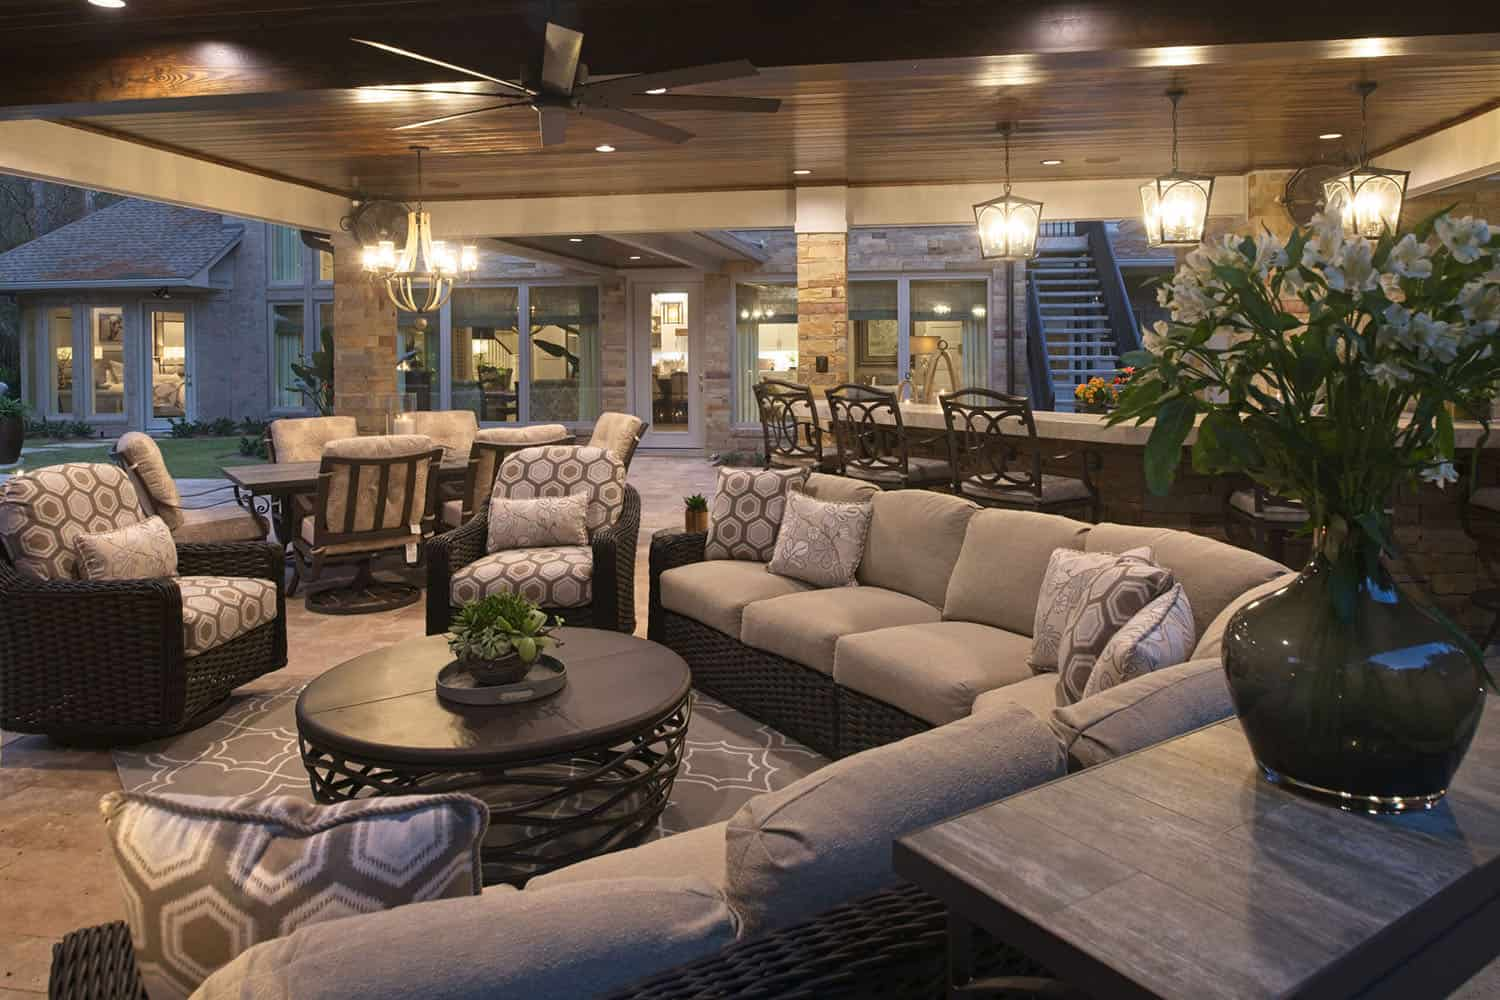 transitional-style-home-patio-outdoor-living-room